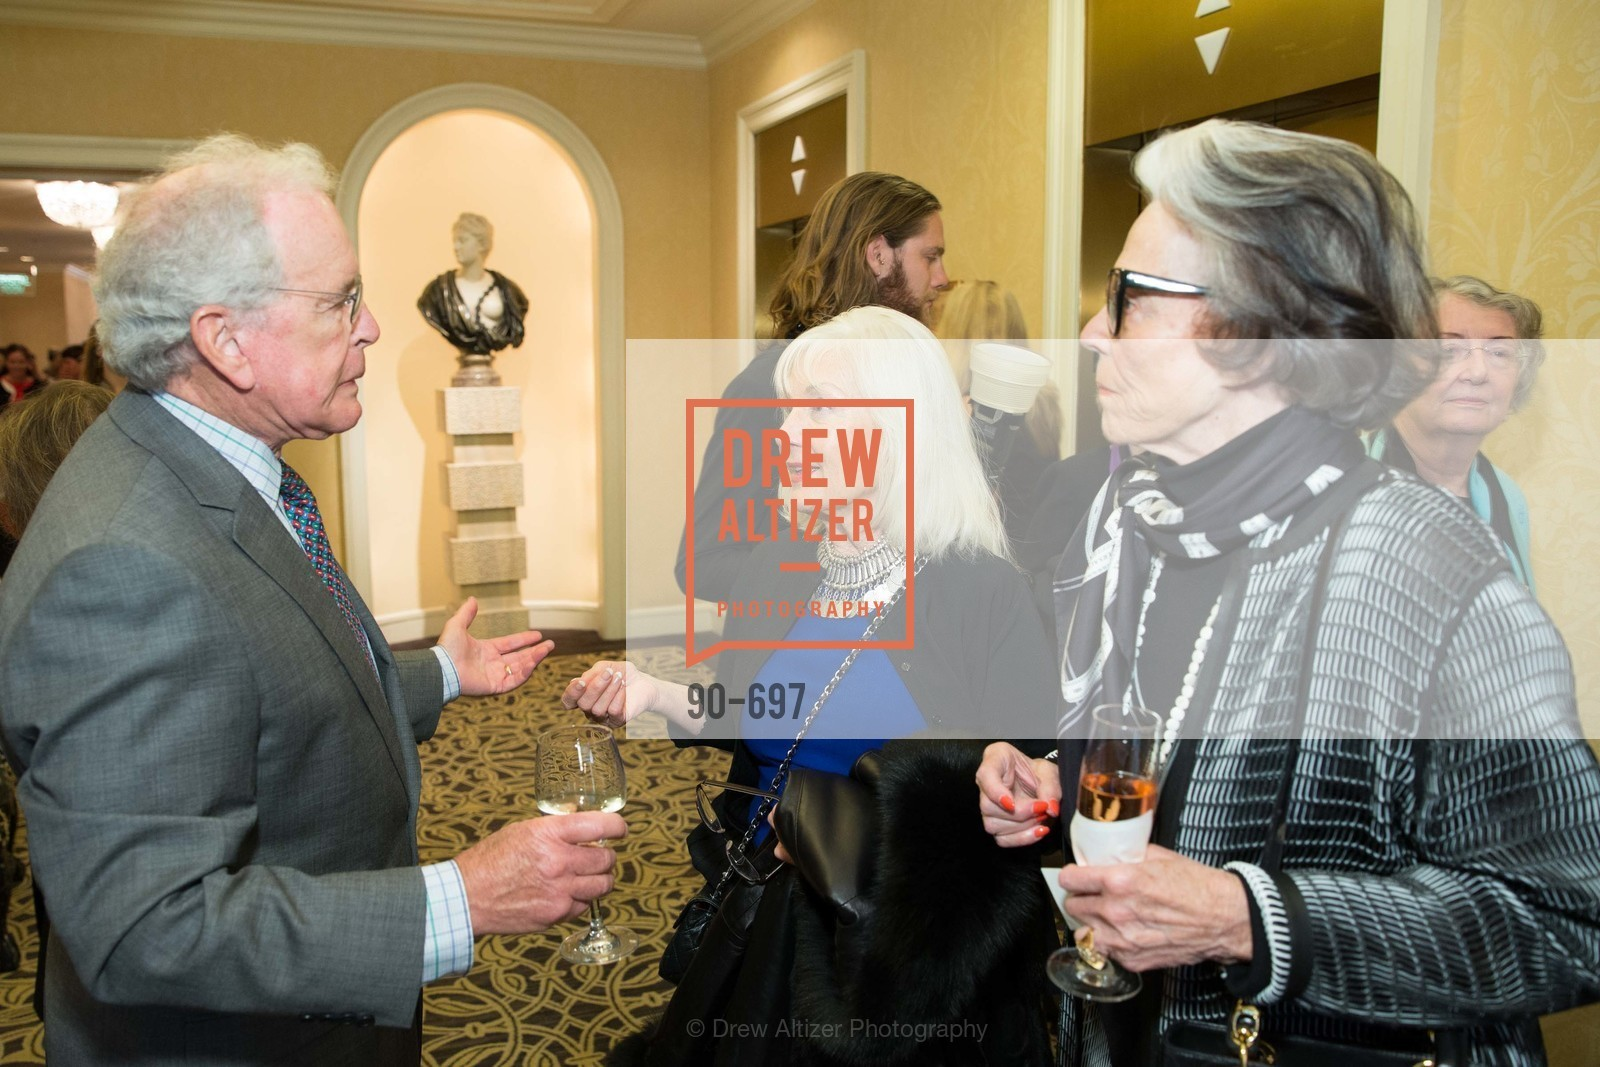 Arlene Inch, JUNIOR LEAGUE OF SAN FRANCISCO's WATCH Luncheon, US, May 5th, 2015,Drew Altizer, Drew Altizer Photography, full-service agency, private events, San Francisco photographer, photographer california